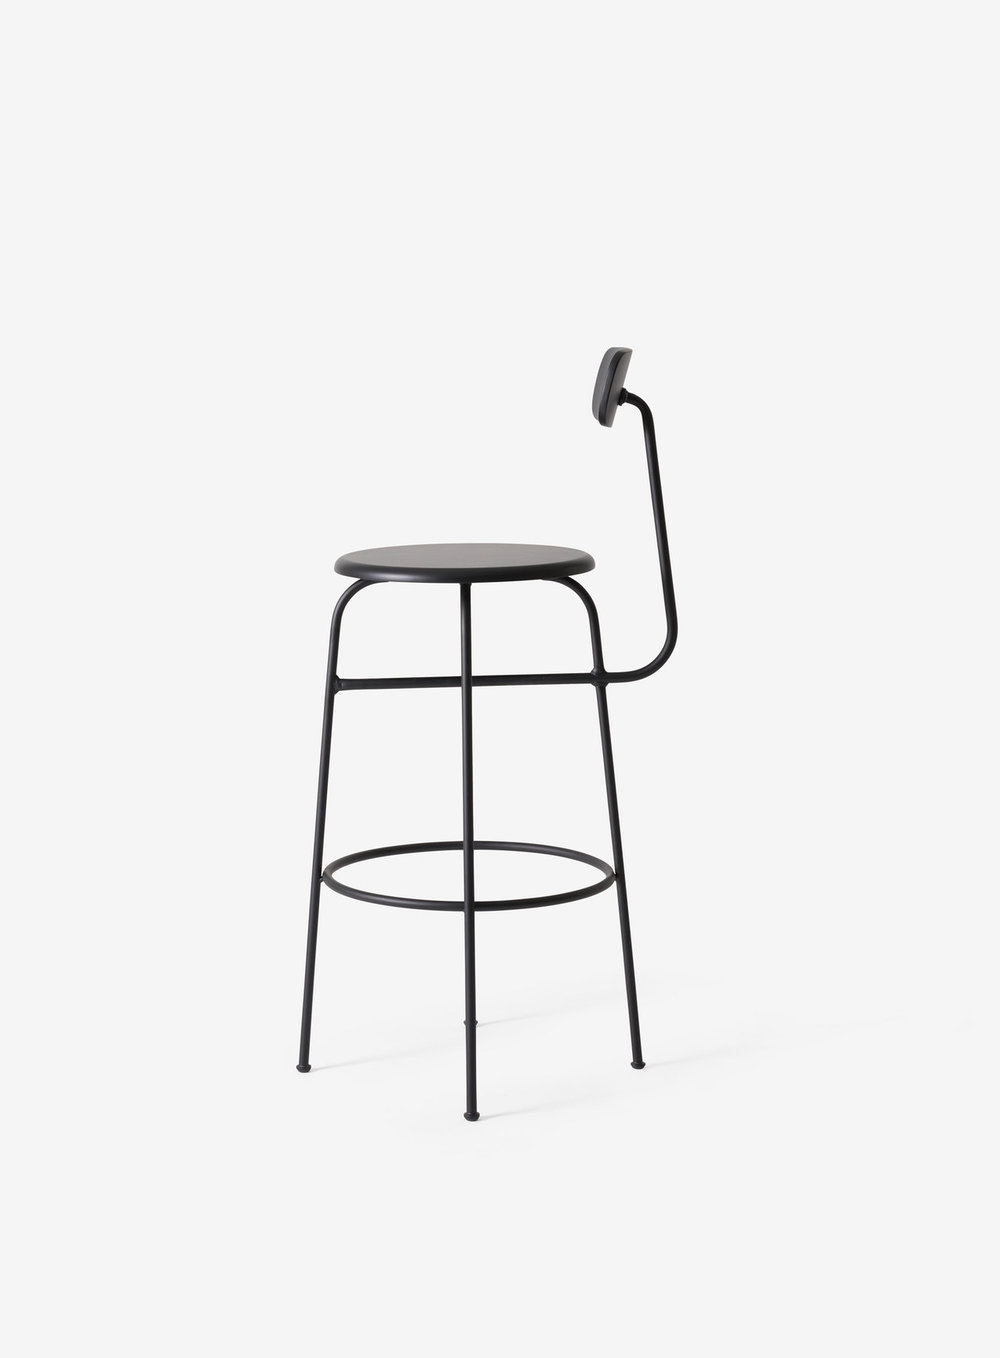 Menu Afternoon barstool $375